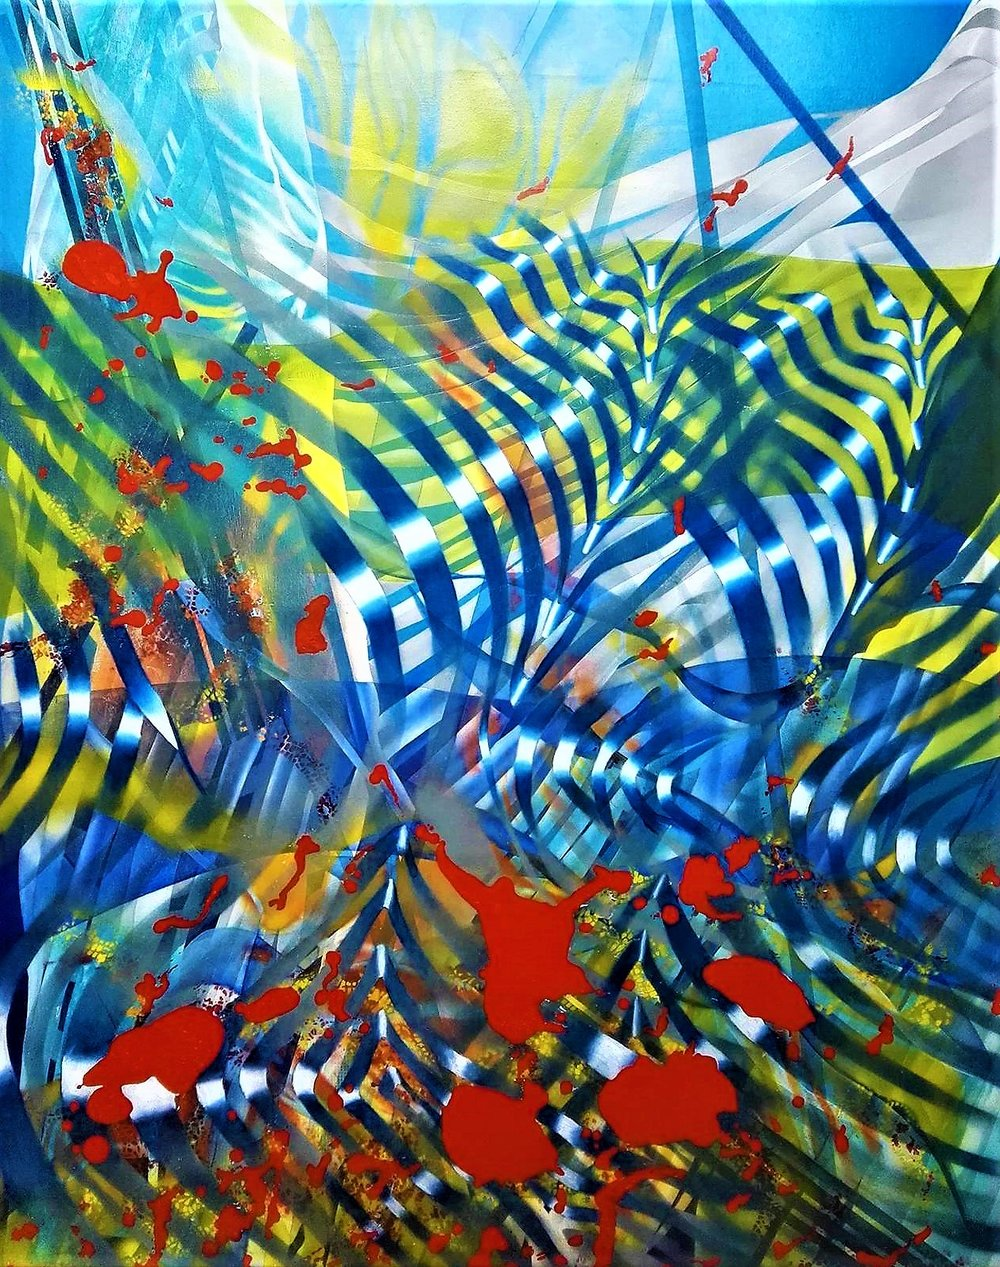 Mariu F. Lacayo, QUANTUM LANDSCAPE, oil on canvas, 115 cm. x 148 cm. 2017.jpg